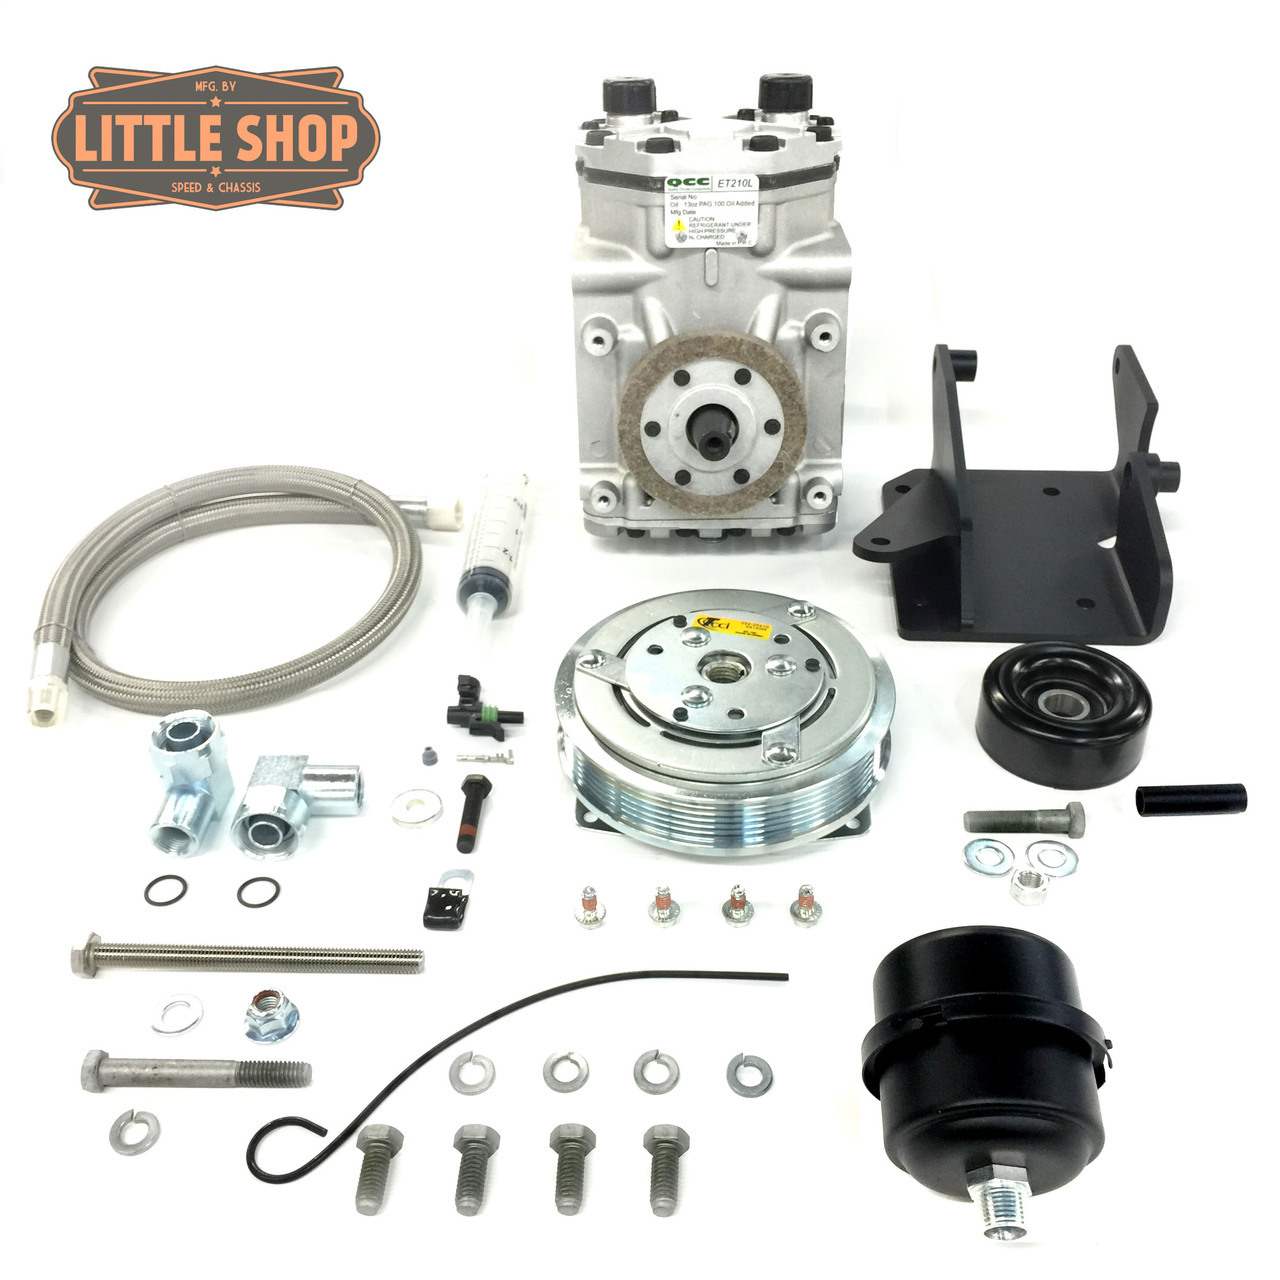 LSMFG-Pre V-EDC 90'-95' GM 4.3, 5.0, 5.7 Pre-Vortec Engine Driven Compressor Kit